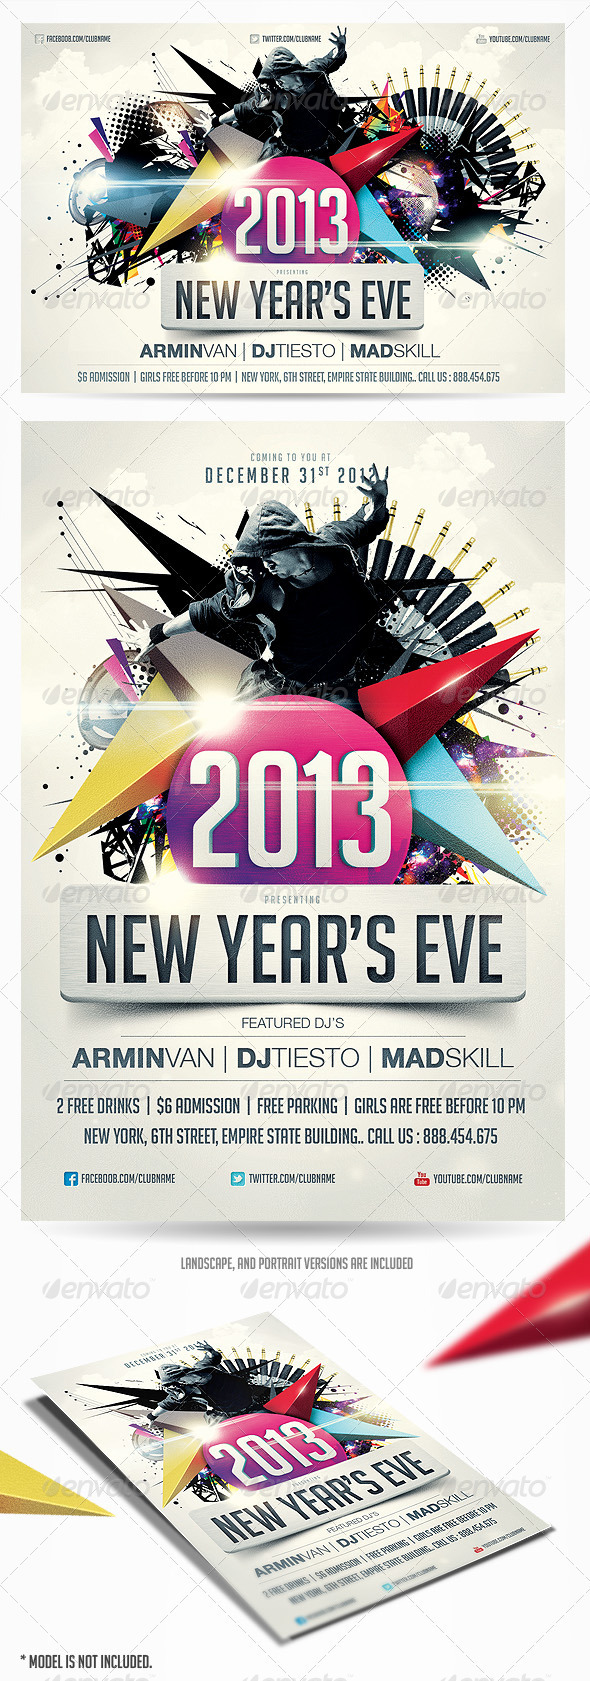 2013 New Years Eve Party Flyer Vol.2 - Clubs & Parties Events